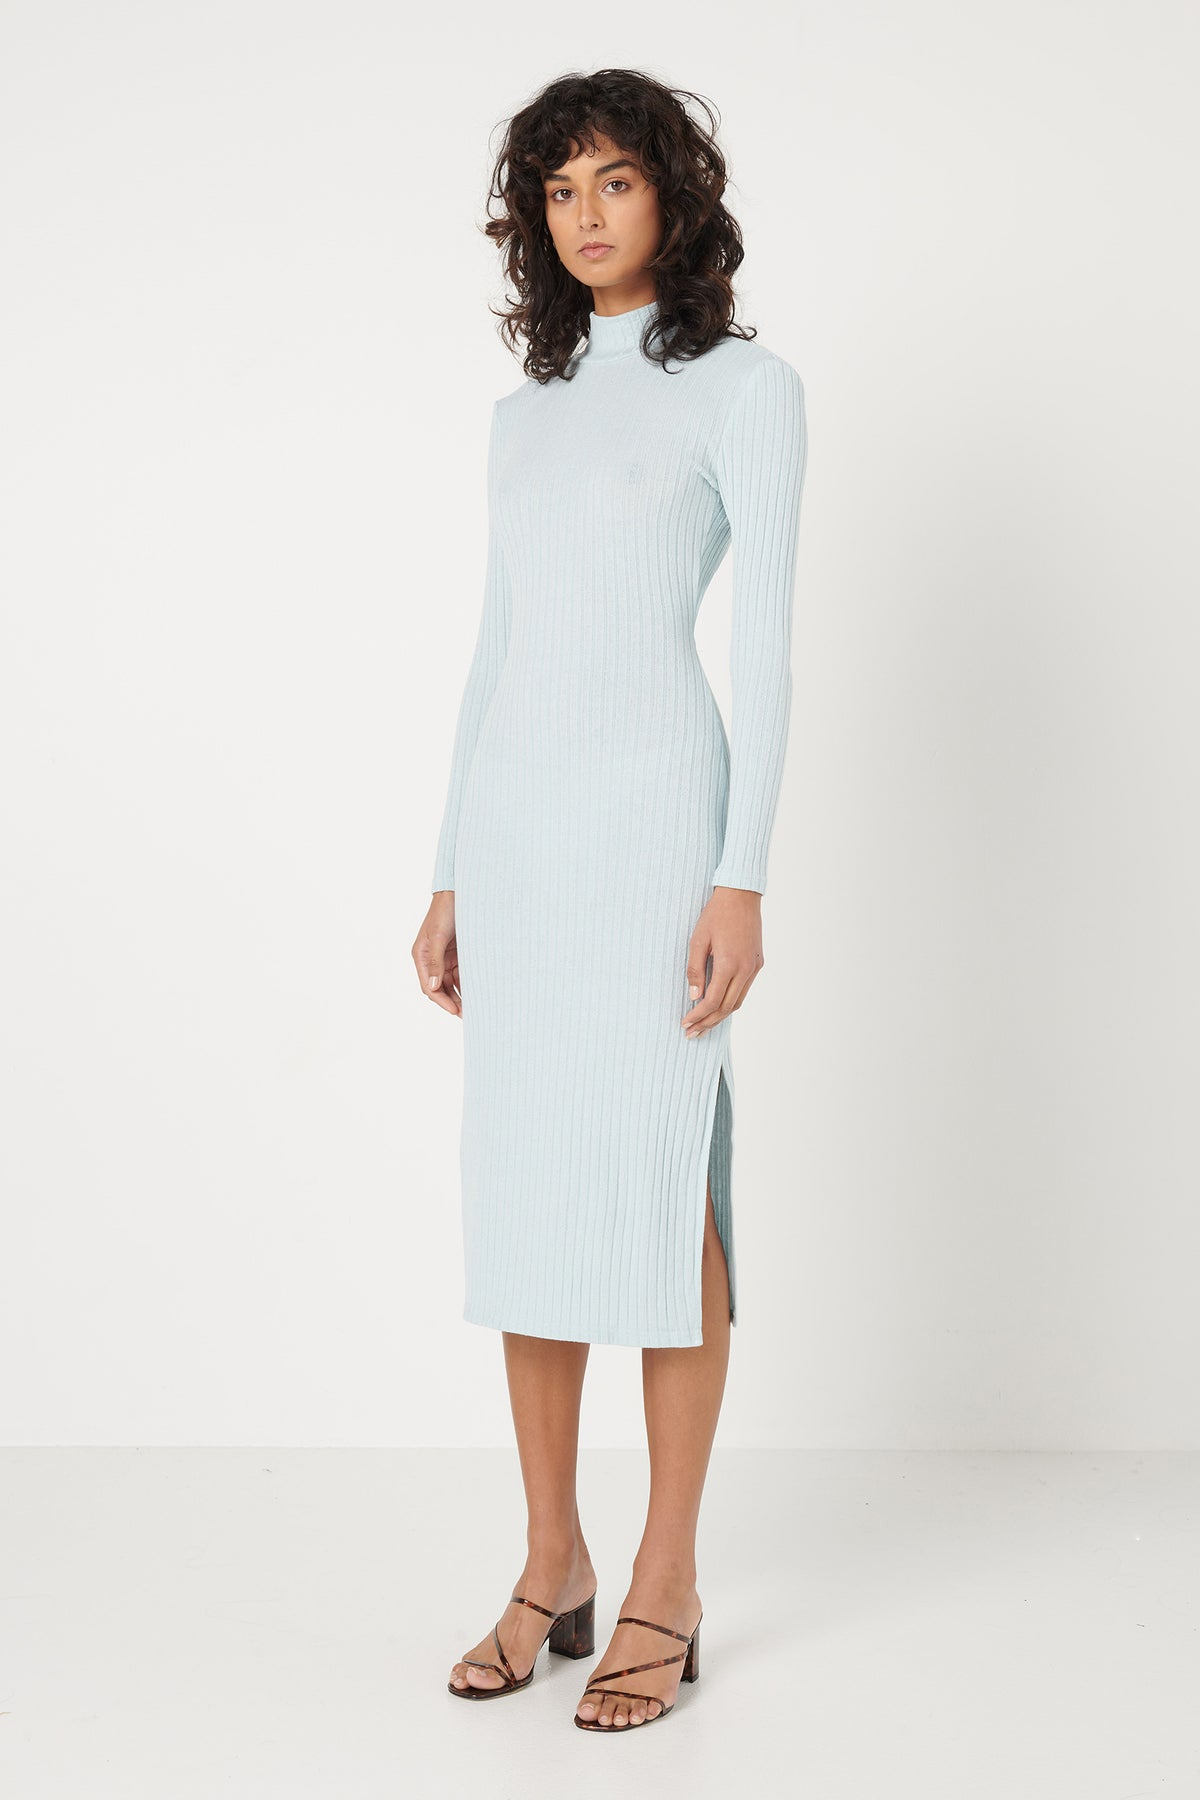 SELMA KNIT DRESS